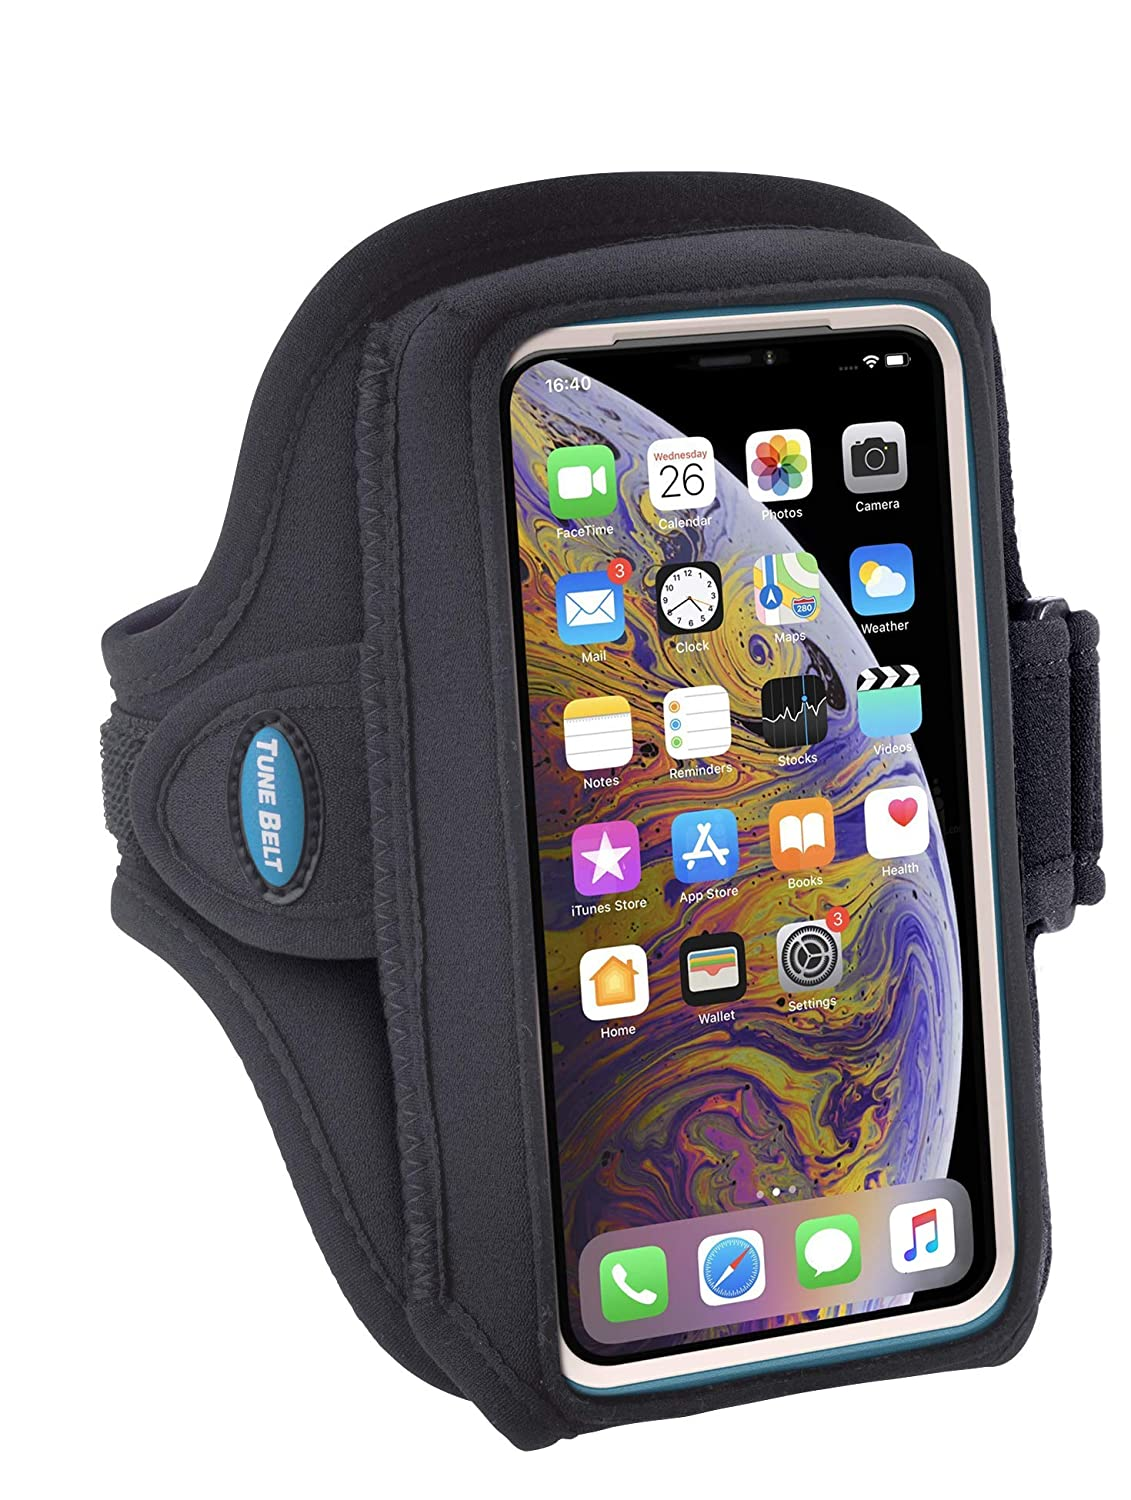 Armband Compatible with iPhone X Xs 8 7 6s 6 with OtterBox Defender/Large Case - Fits Galaxy S6 S7 S8 S9 with LifeProof Case - for Running & Working Out - Sweat-Resistant [Black]